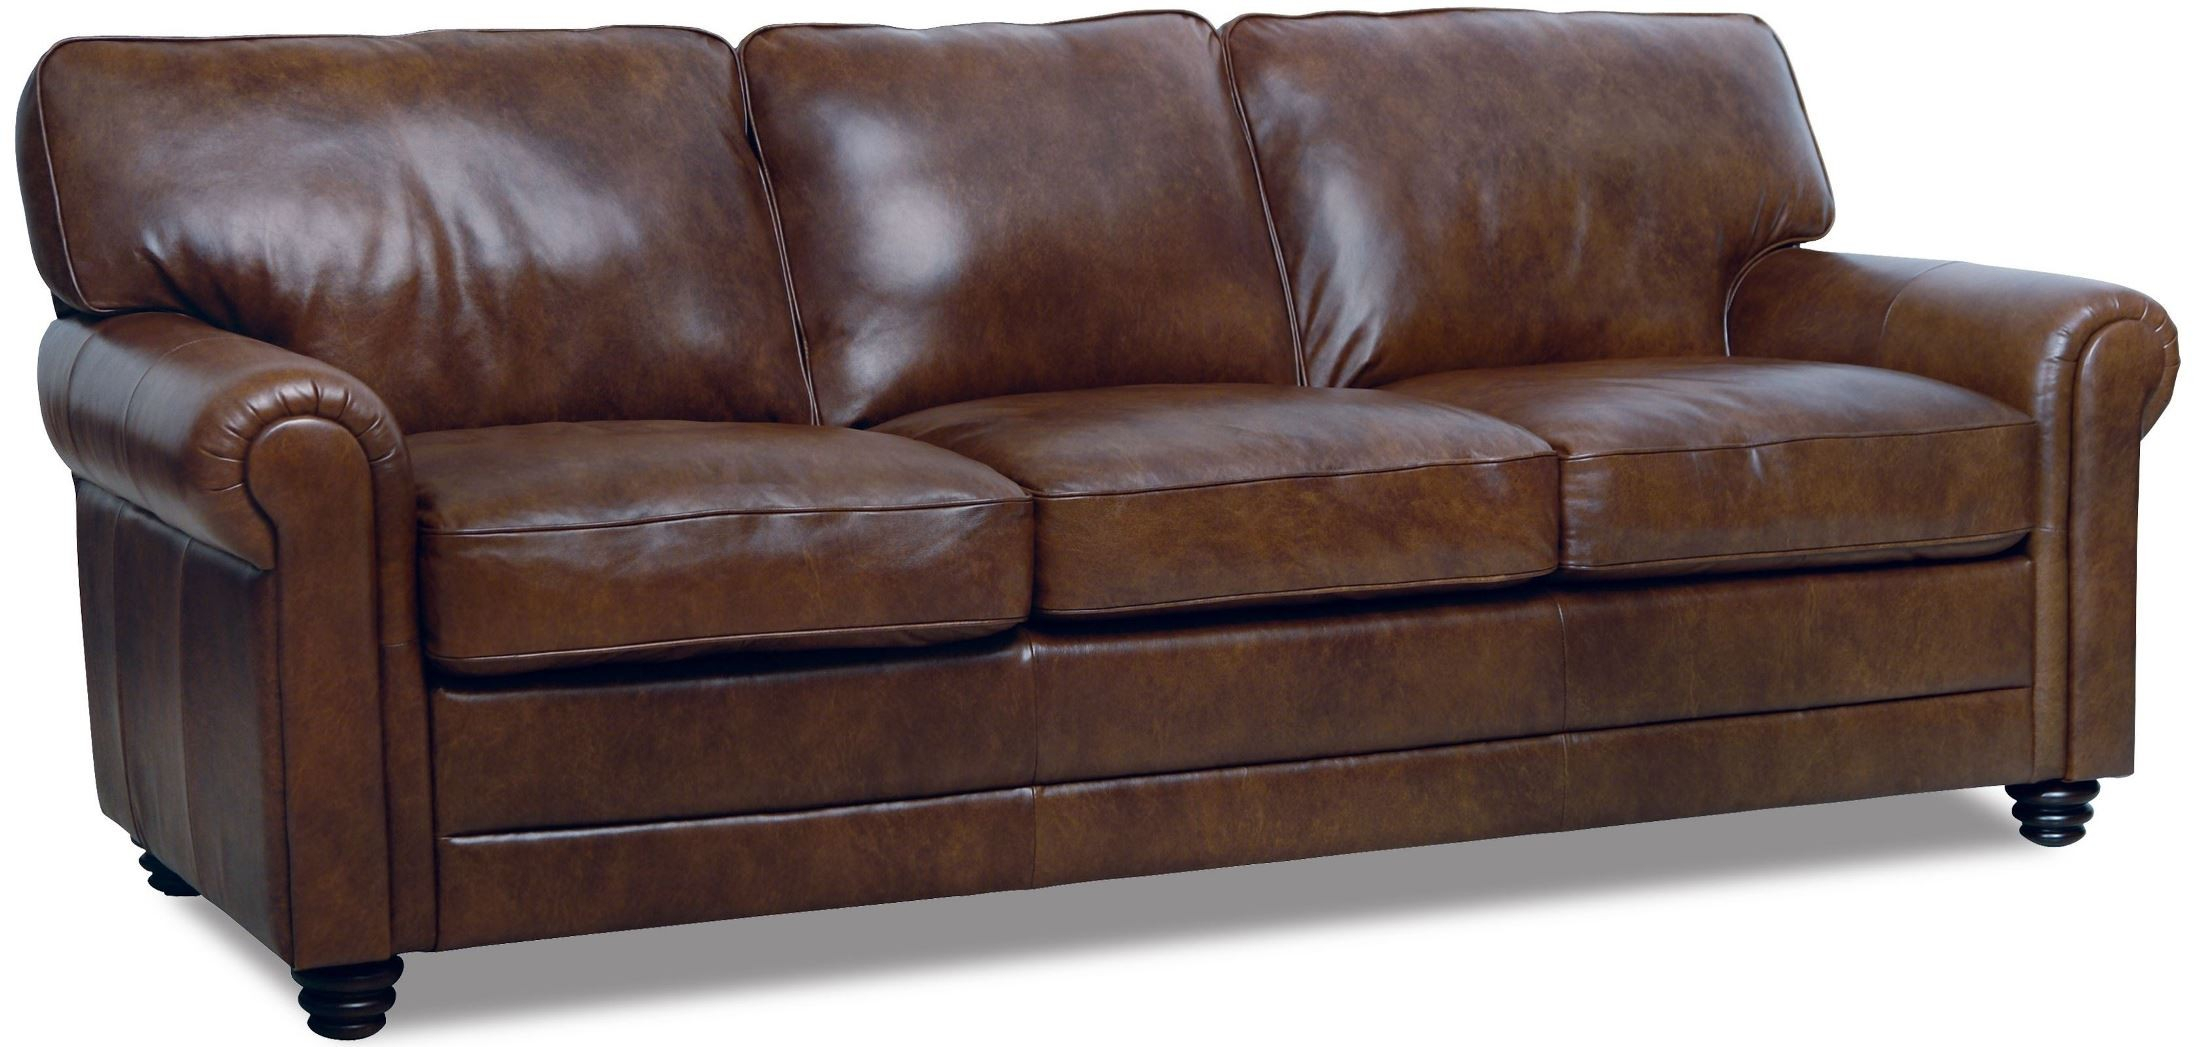 Andrew Italian Leather Sofa From Luke Leather | Coleman Furniture Inside Andrew Leather Sofa Chairs (Image 5 of 20)